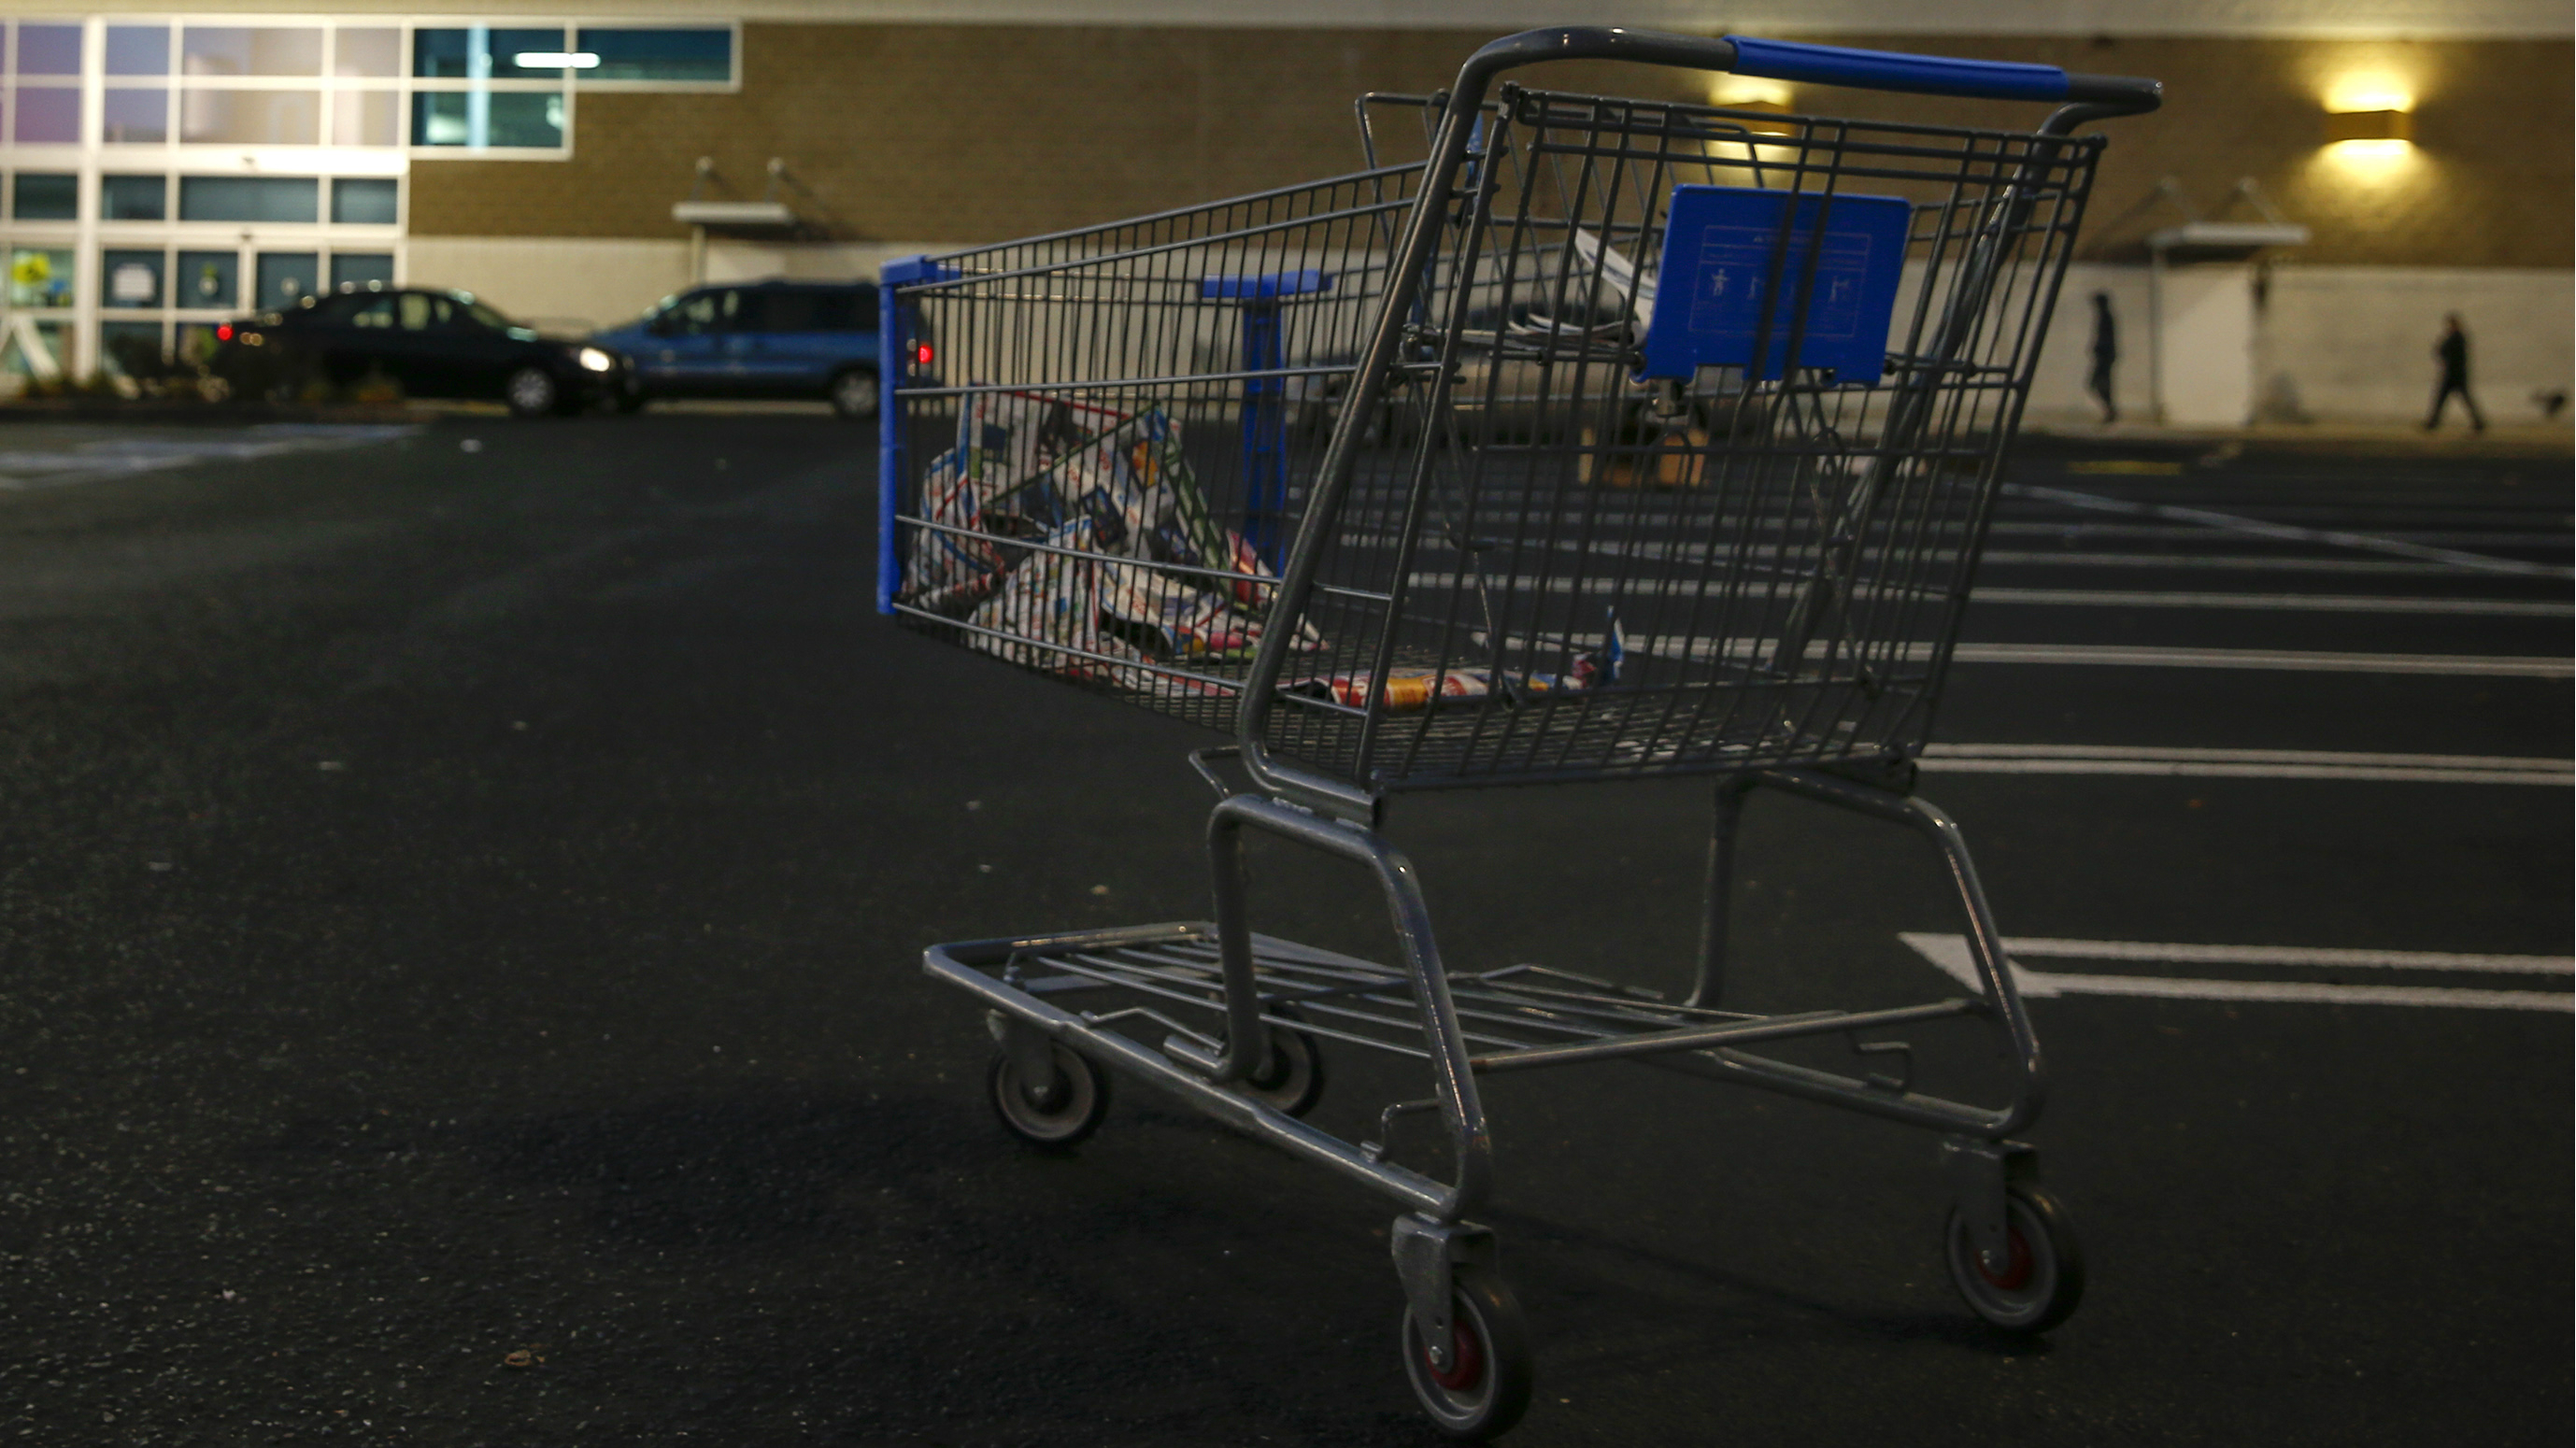 DATE IMPORTED:November 28, 2014An empty shopping cart is seen outside a Best Buy store in Westbury, New York November 28, 2014. The Best Buy re-opened at 8am after opening Thanksgiving evening at 5pm and closing at 10 pm ahead of many other Black Friday retailers. REUTERS/Shannon Stapleton